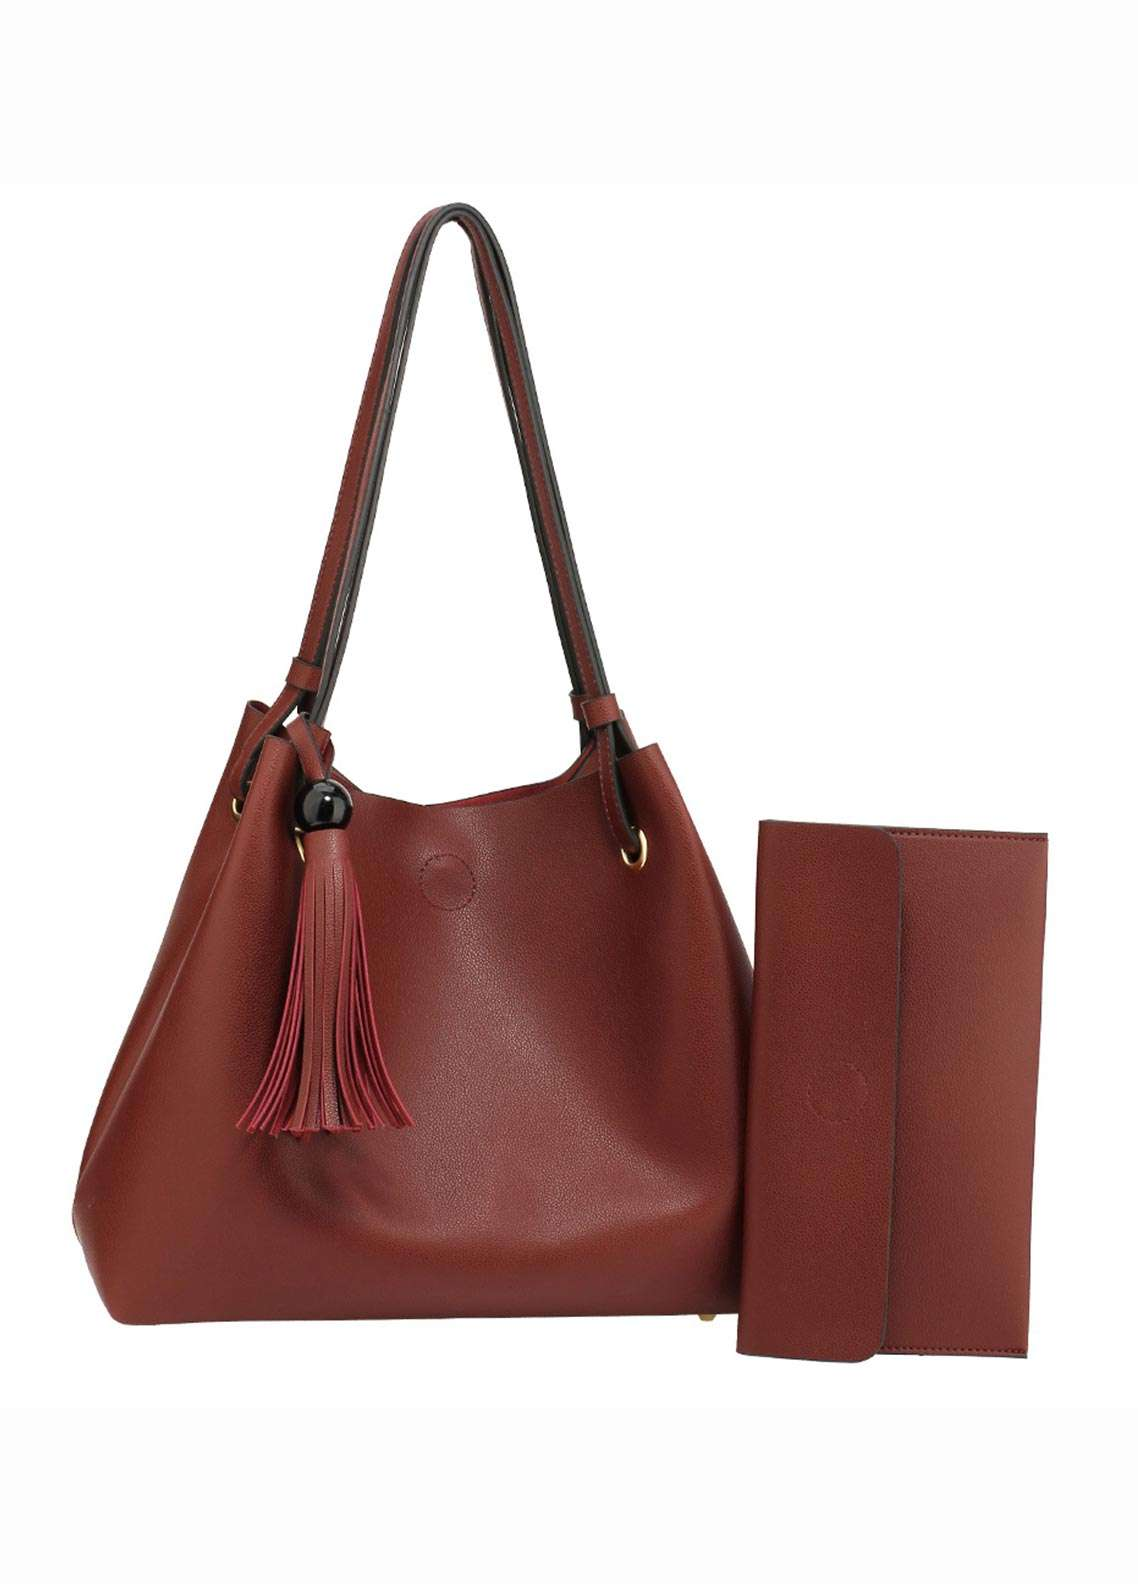 Anna Grace London Faux Leather Hobo Bags  for Women  Red with Smooth Texture